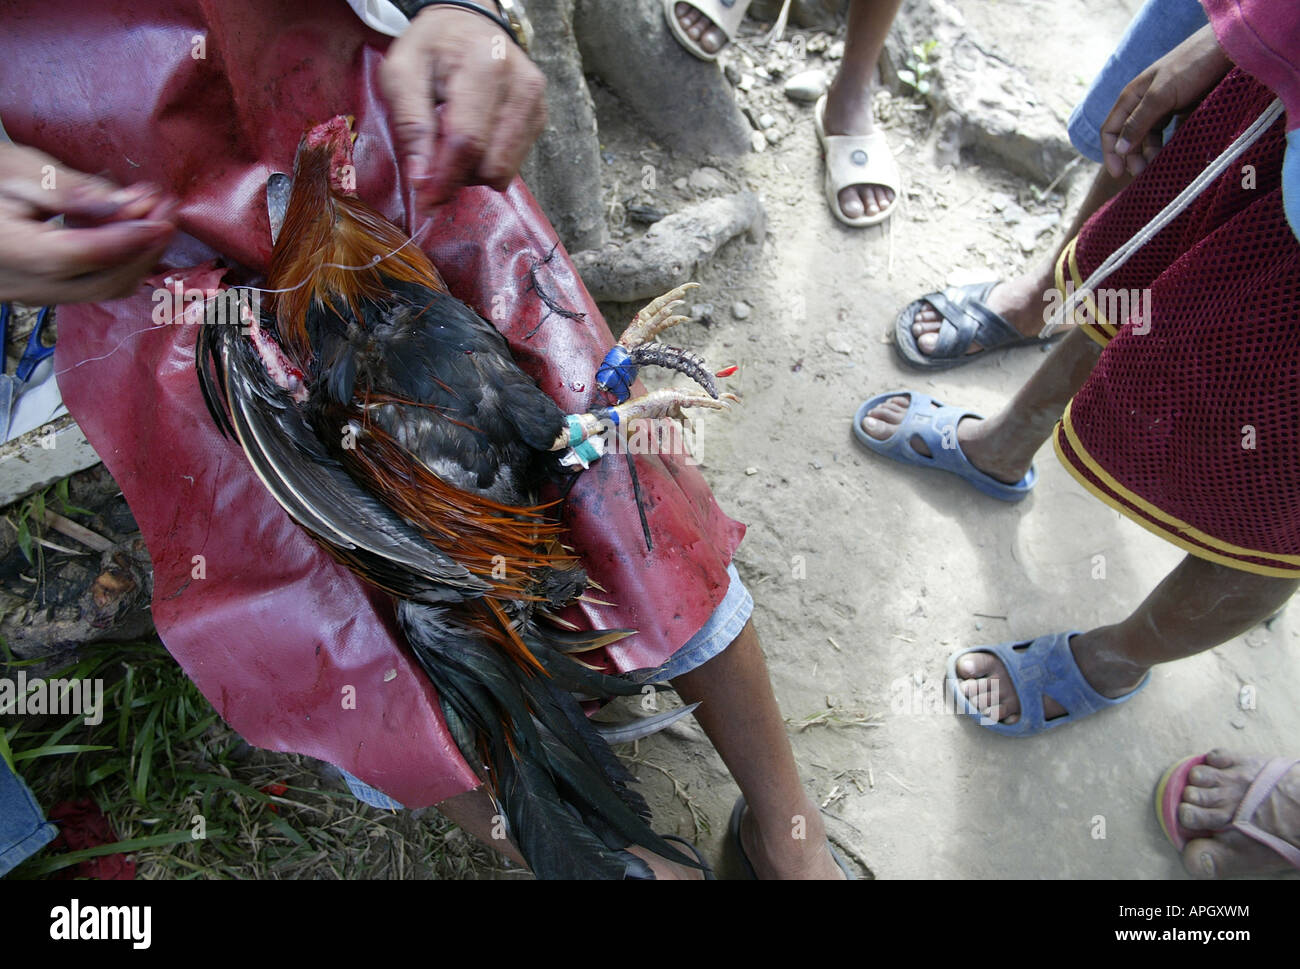 """A """"chicken doctor"""" mends a wounded fighting bird outside a rural cockhouse in Oriental Mindoro, Philippines. Stock Photo"""